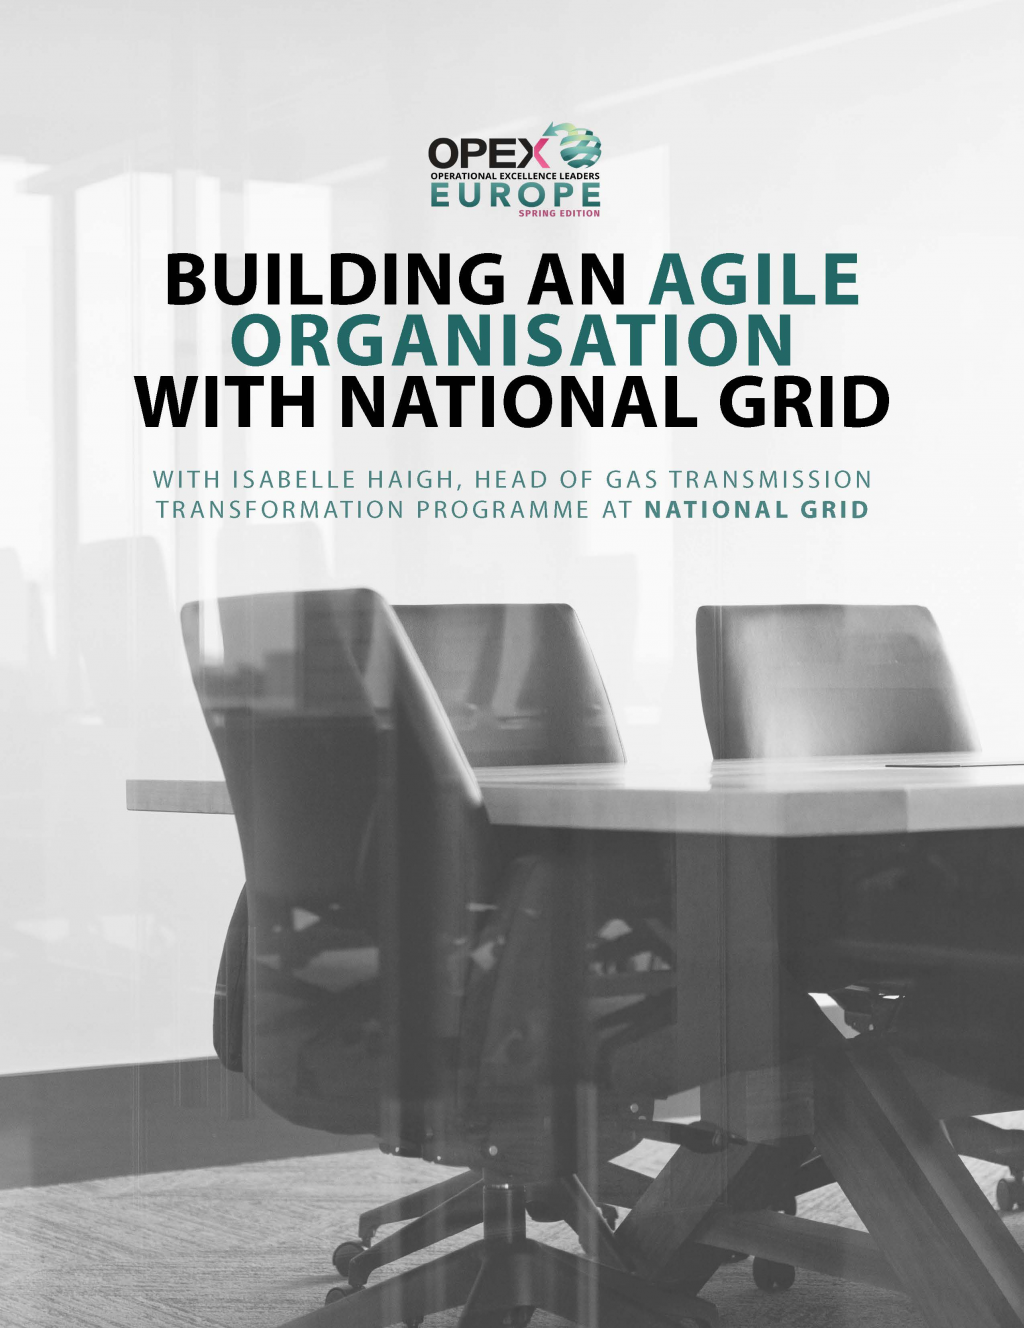 Building an agile organisation with National Grid